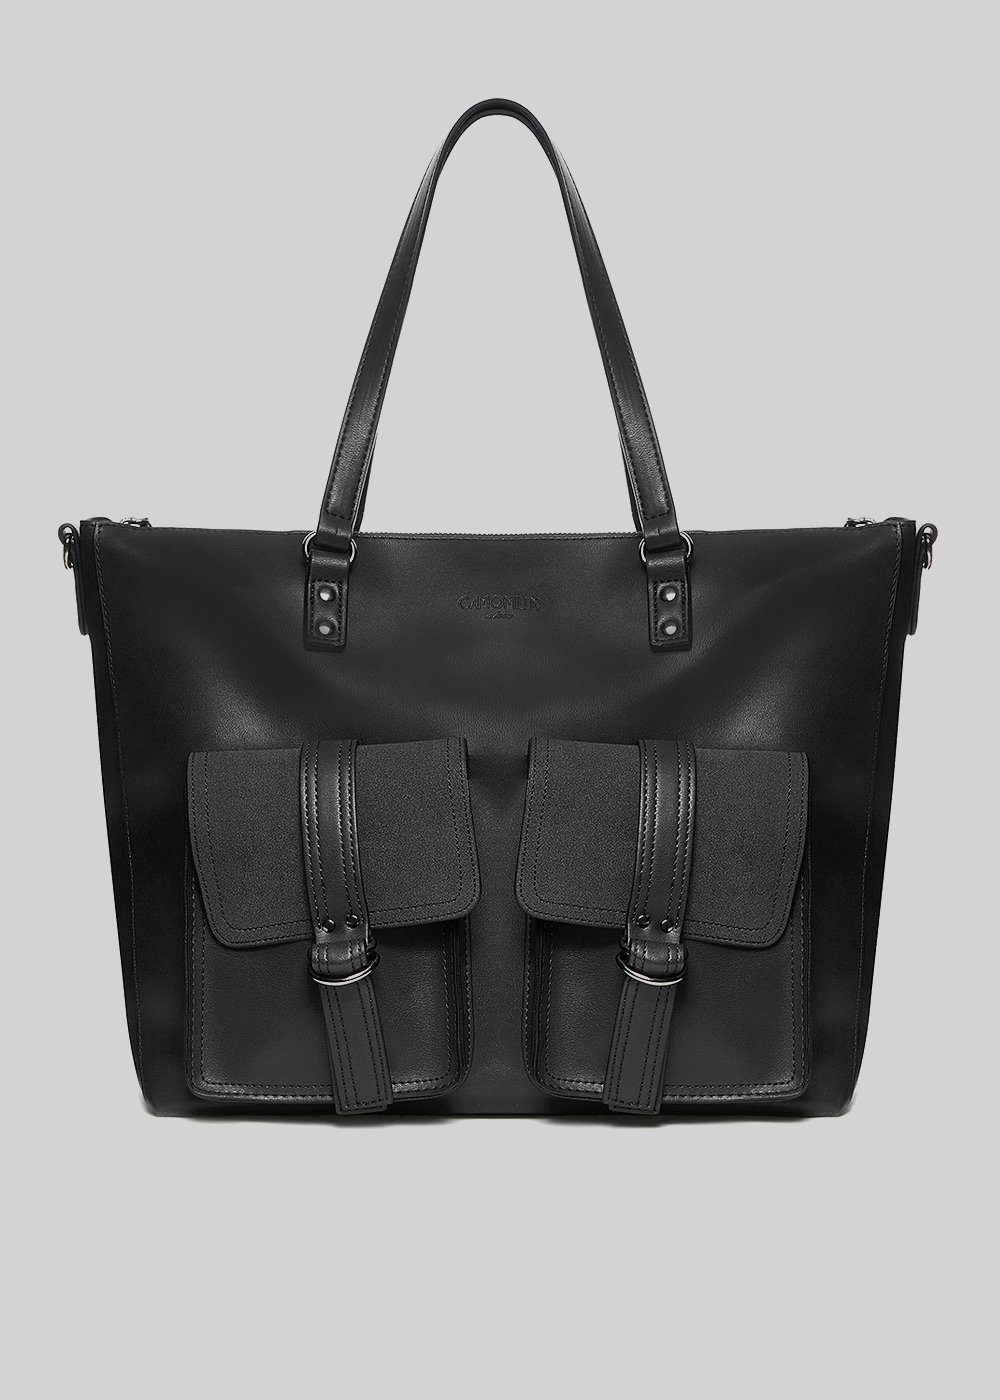 Borah bag in faux leather with pockets and removable shoulder strap